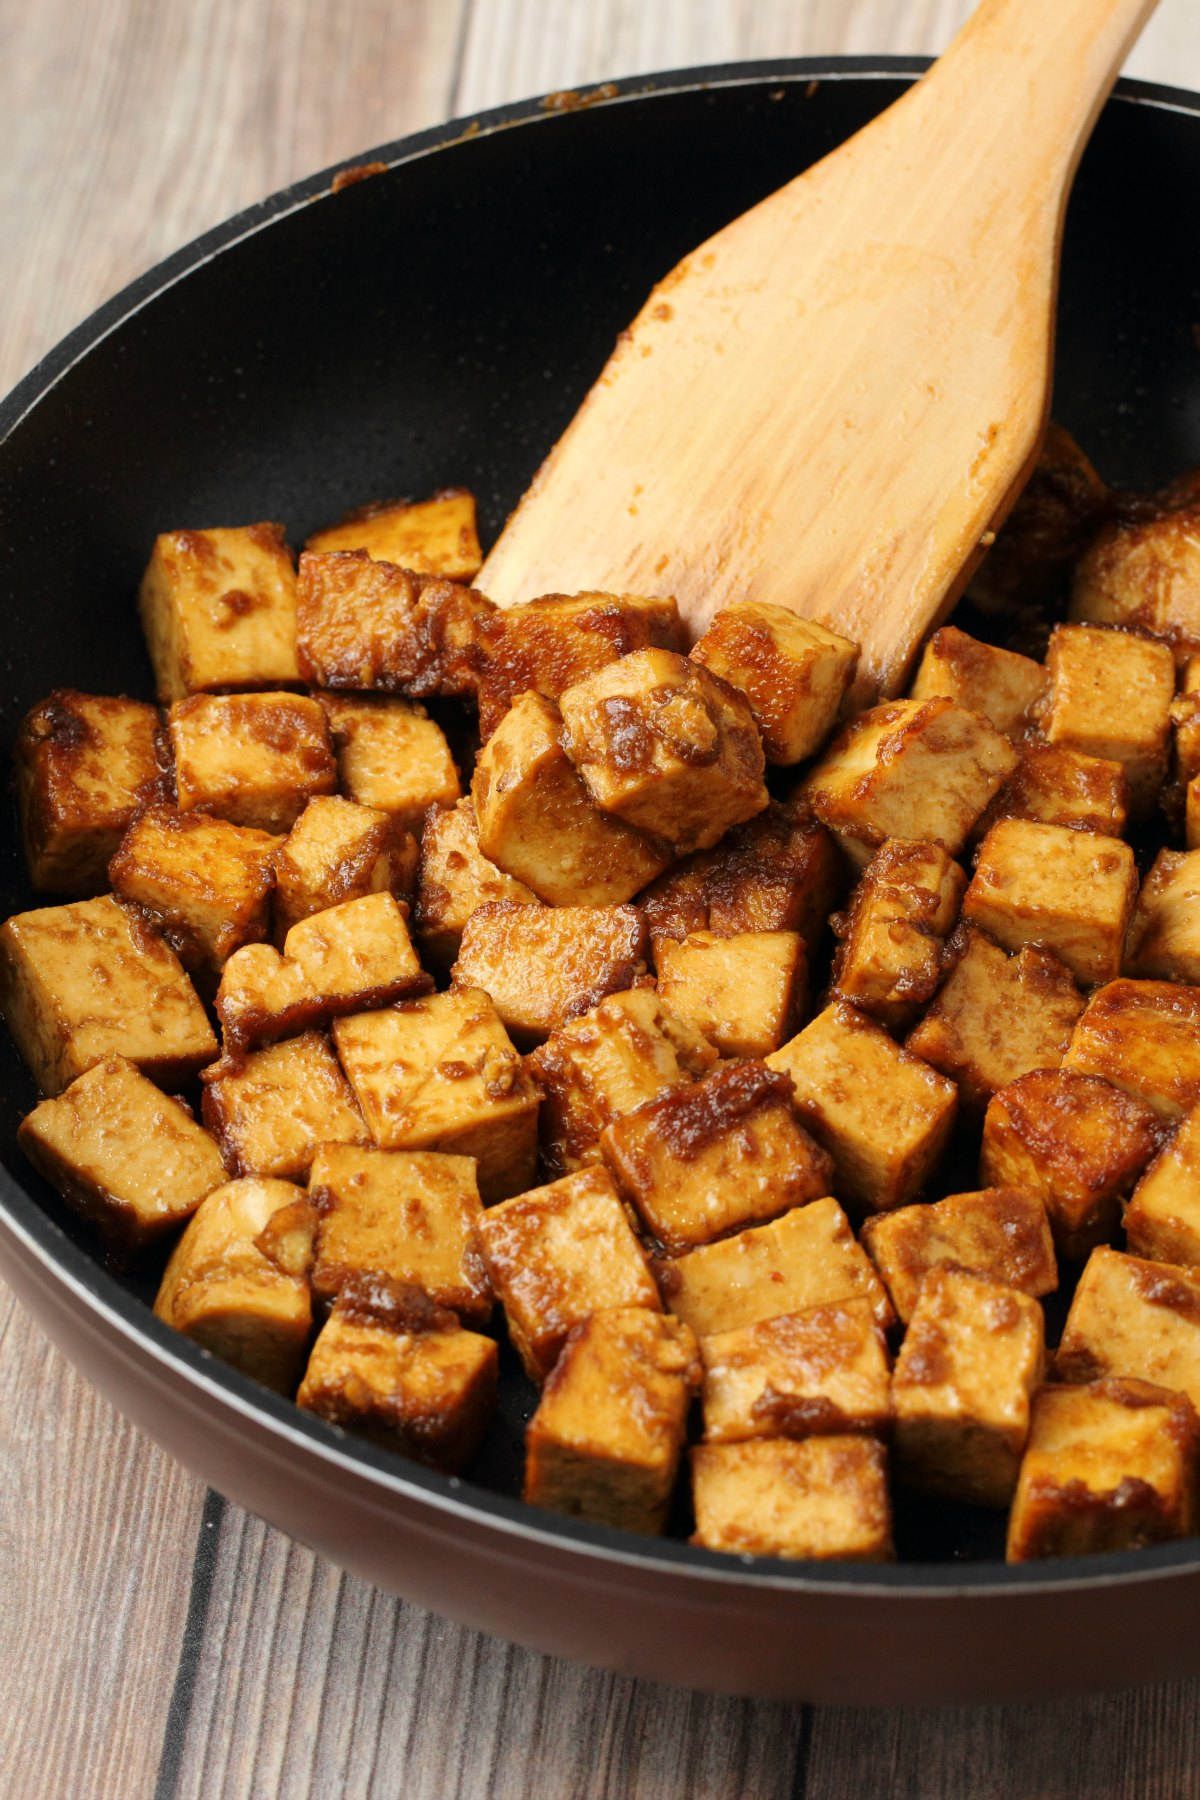 Marinated tofu frying in a pan with a wooden spatula.